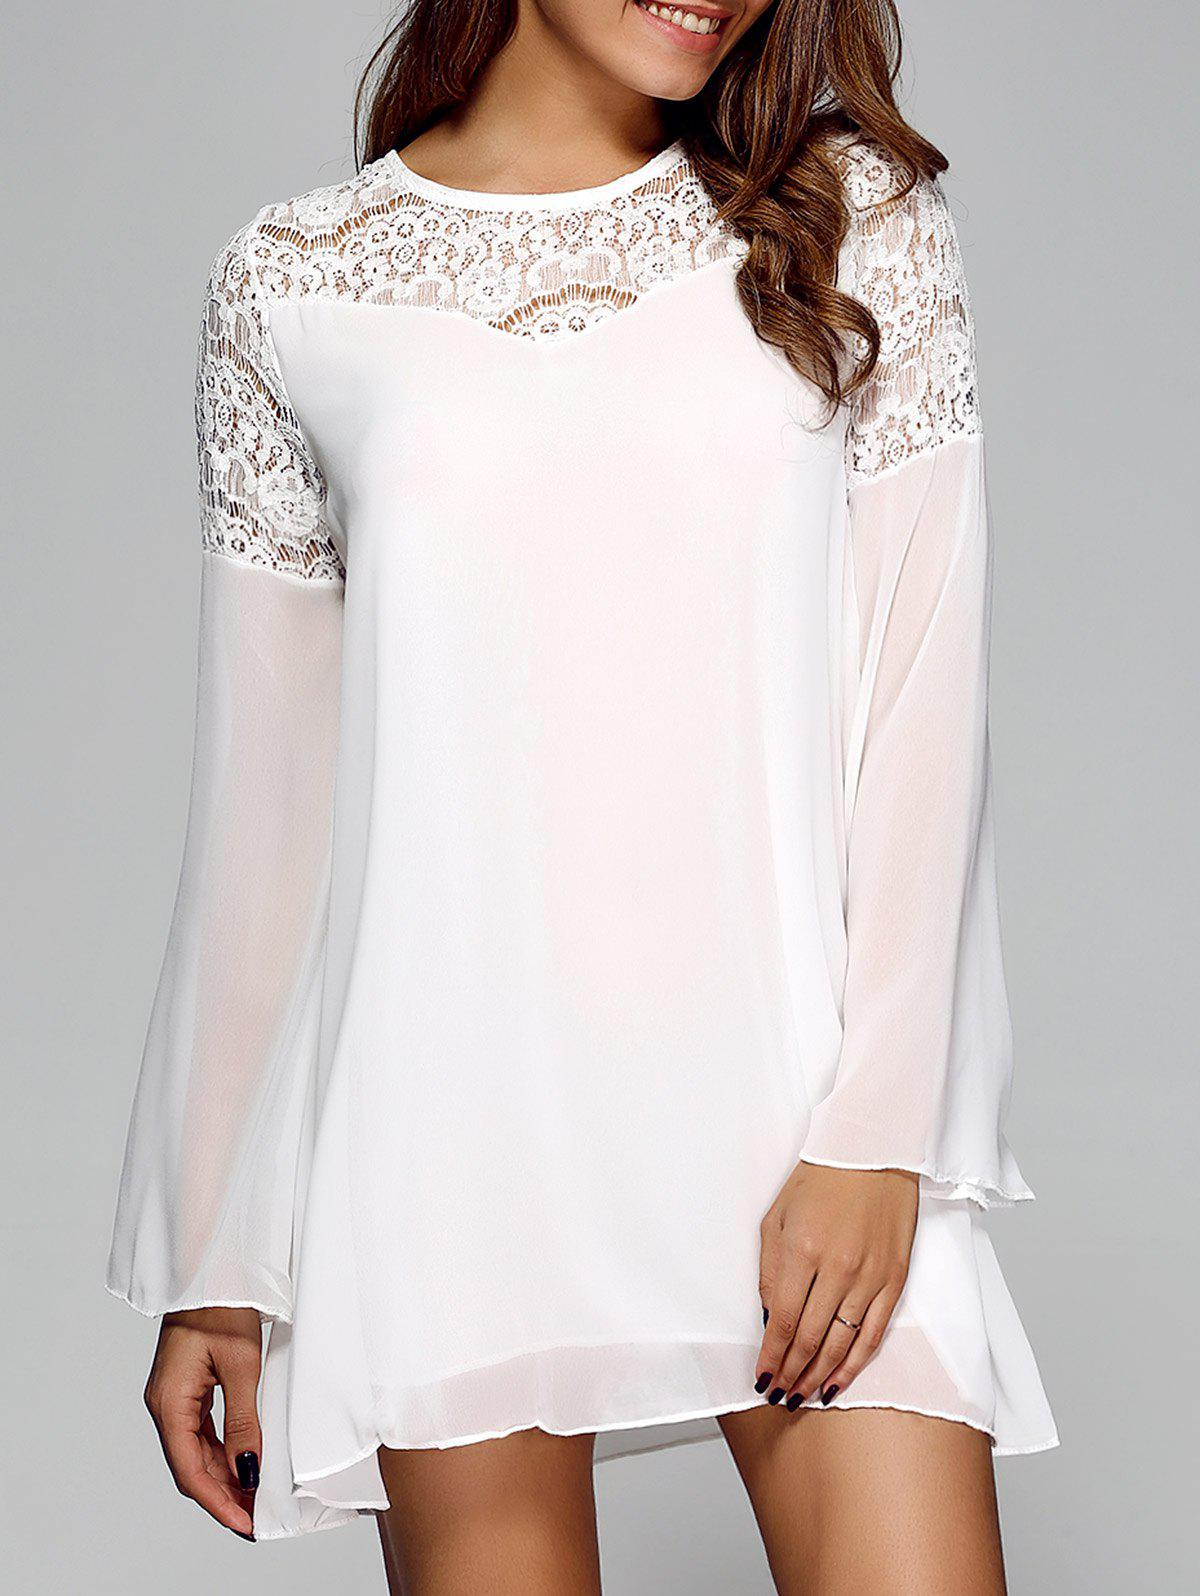 Store Openwork Bell Sleeve Chiffon Shift Dress